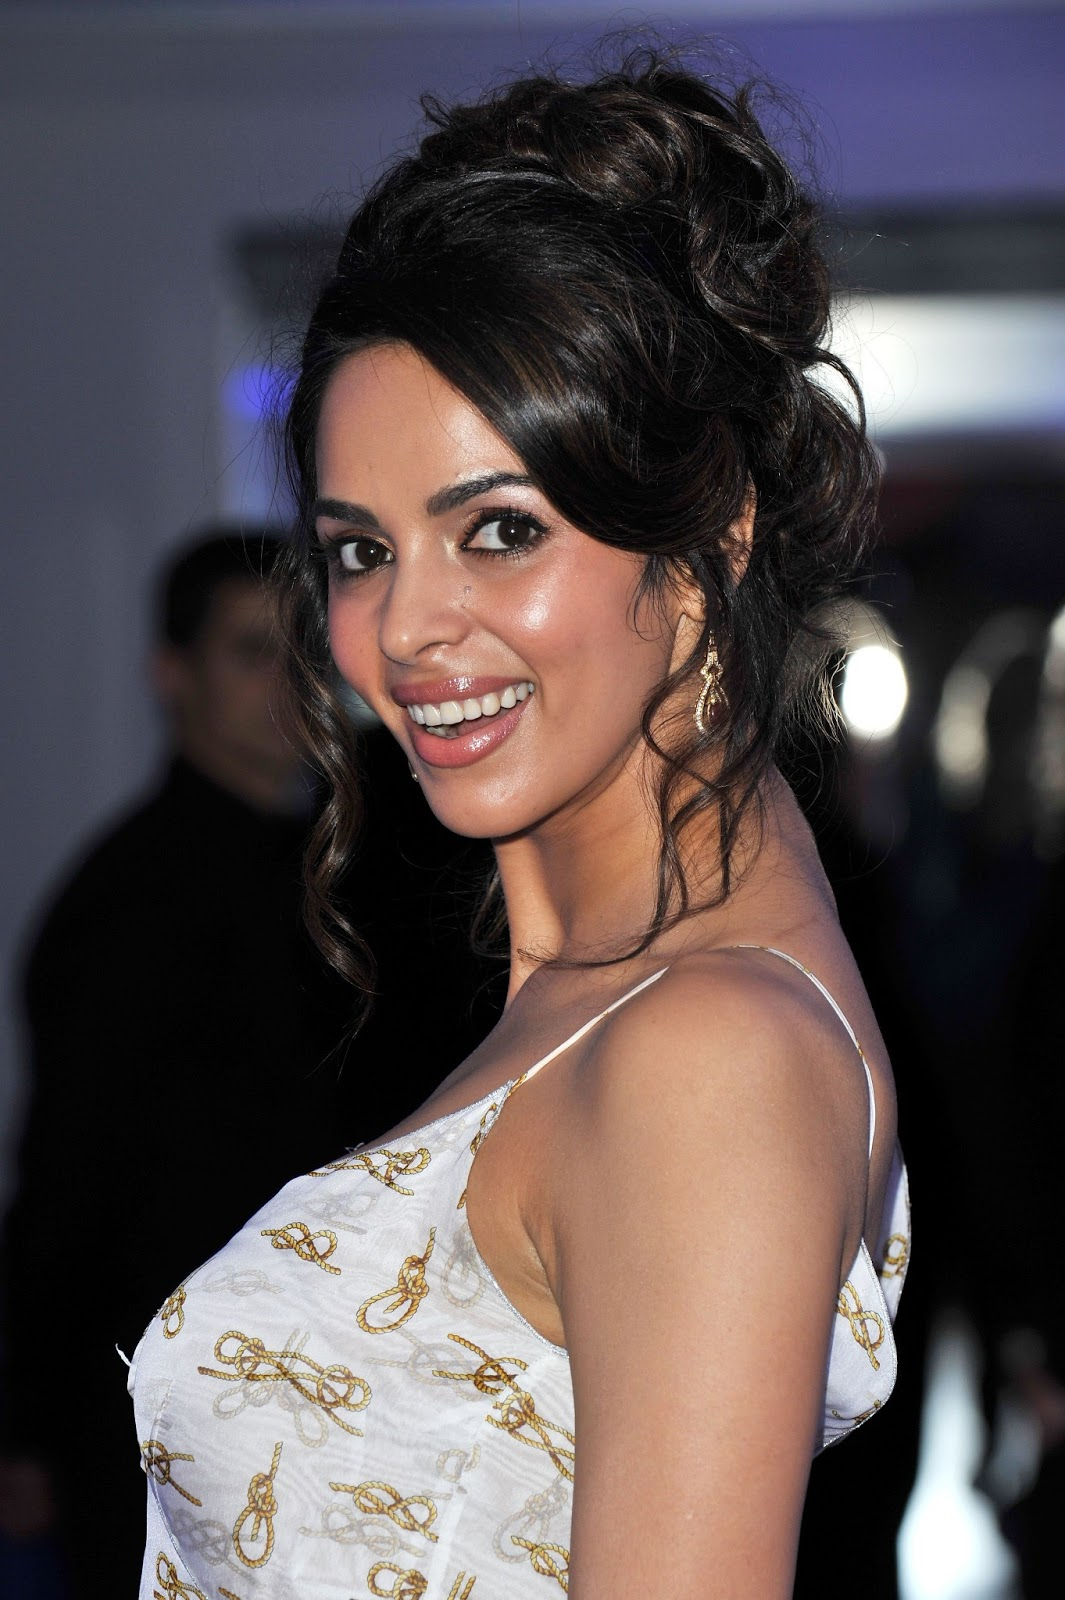 HD Wallpapers Fine: mallika sherawat,mallika sherawat muder high resolution hd wallpapers free ...